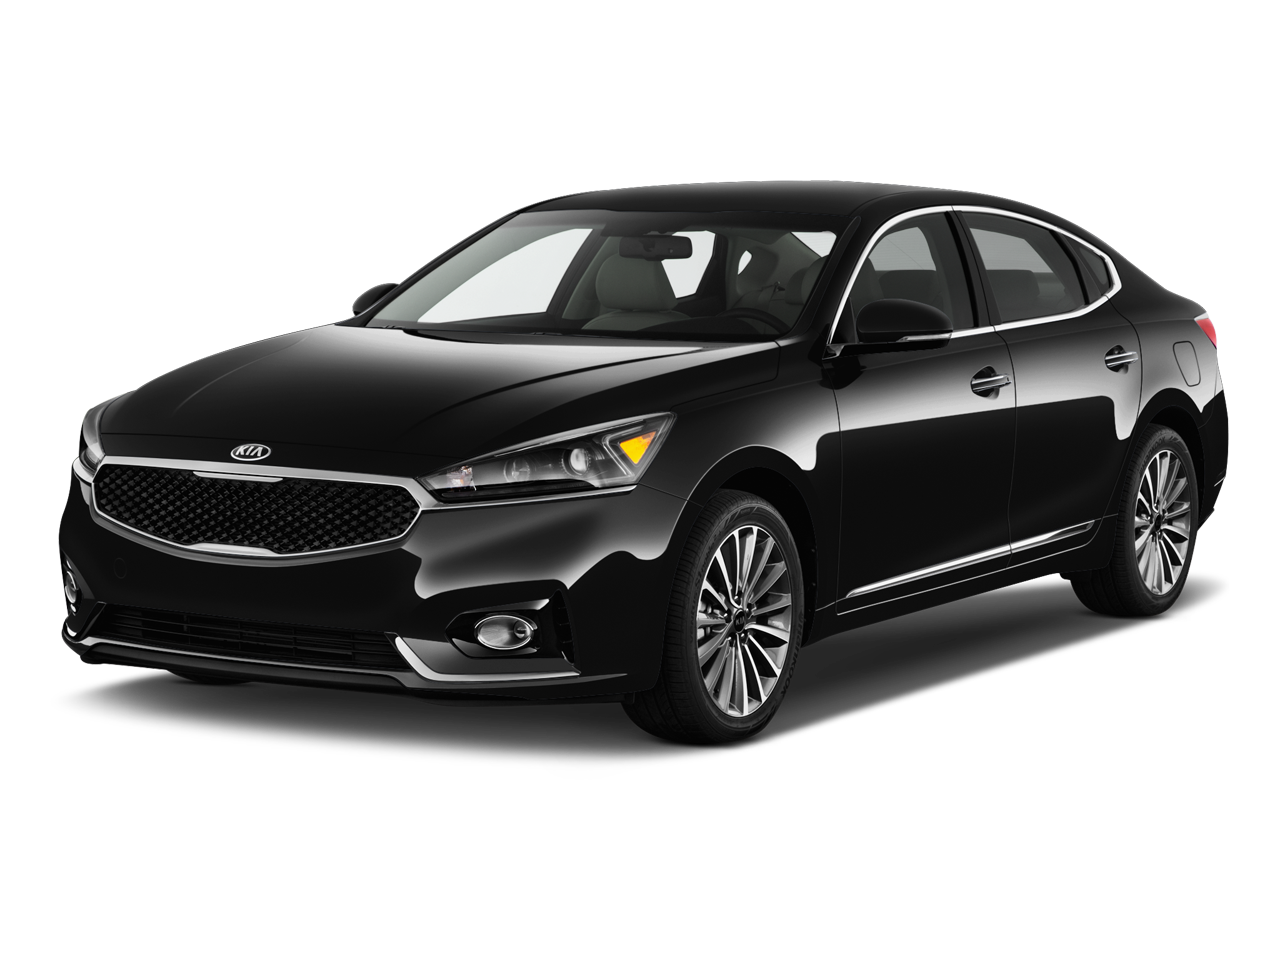 new 2017 kia cadenza premium near pomona ca allstar kia of pomona. Black Bedroom Furniture Sets. Home Design Ideas